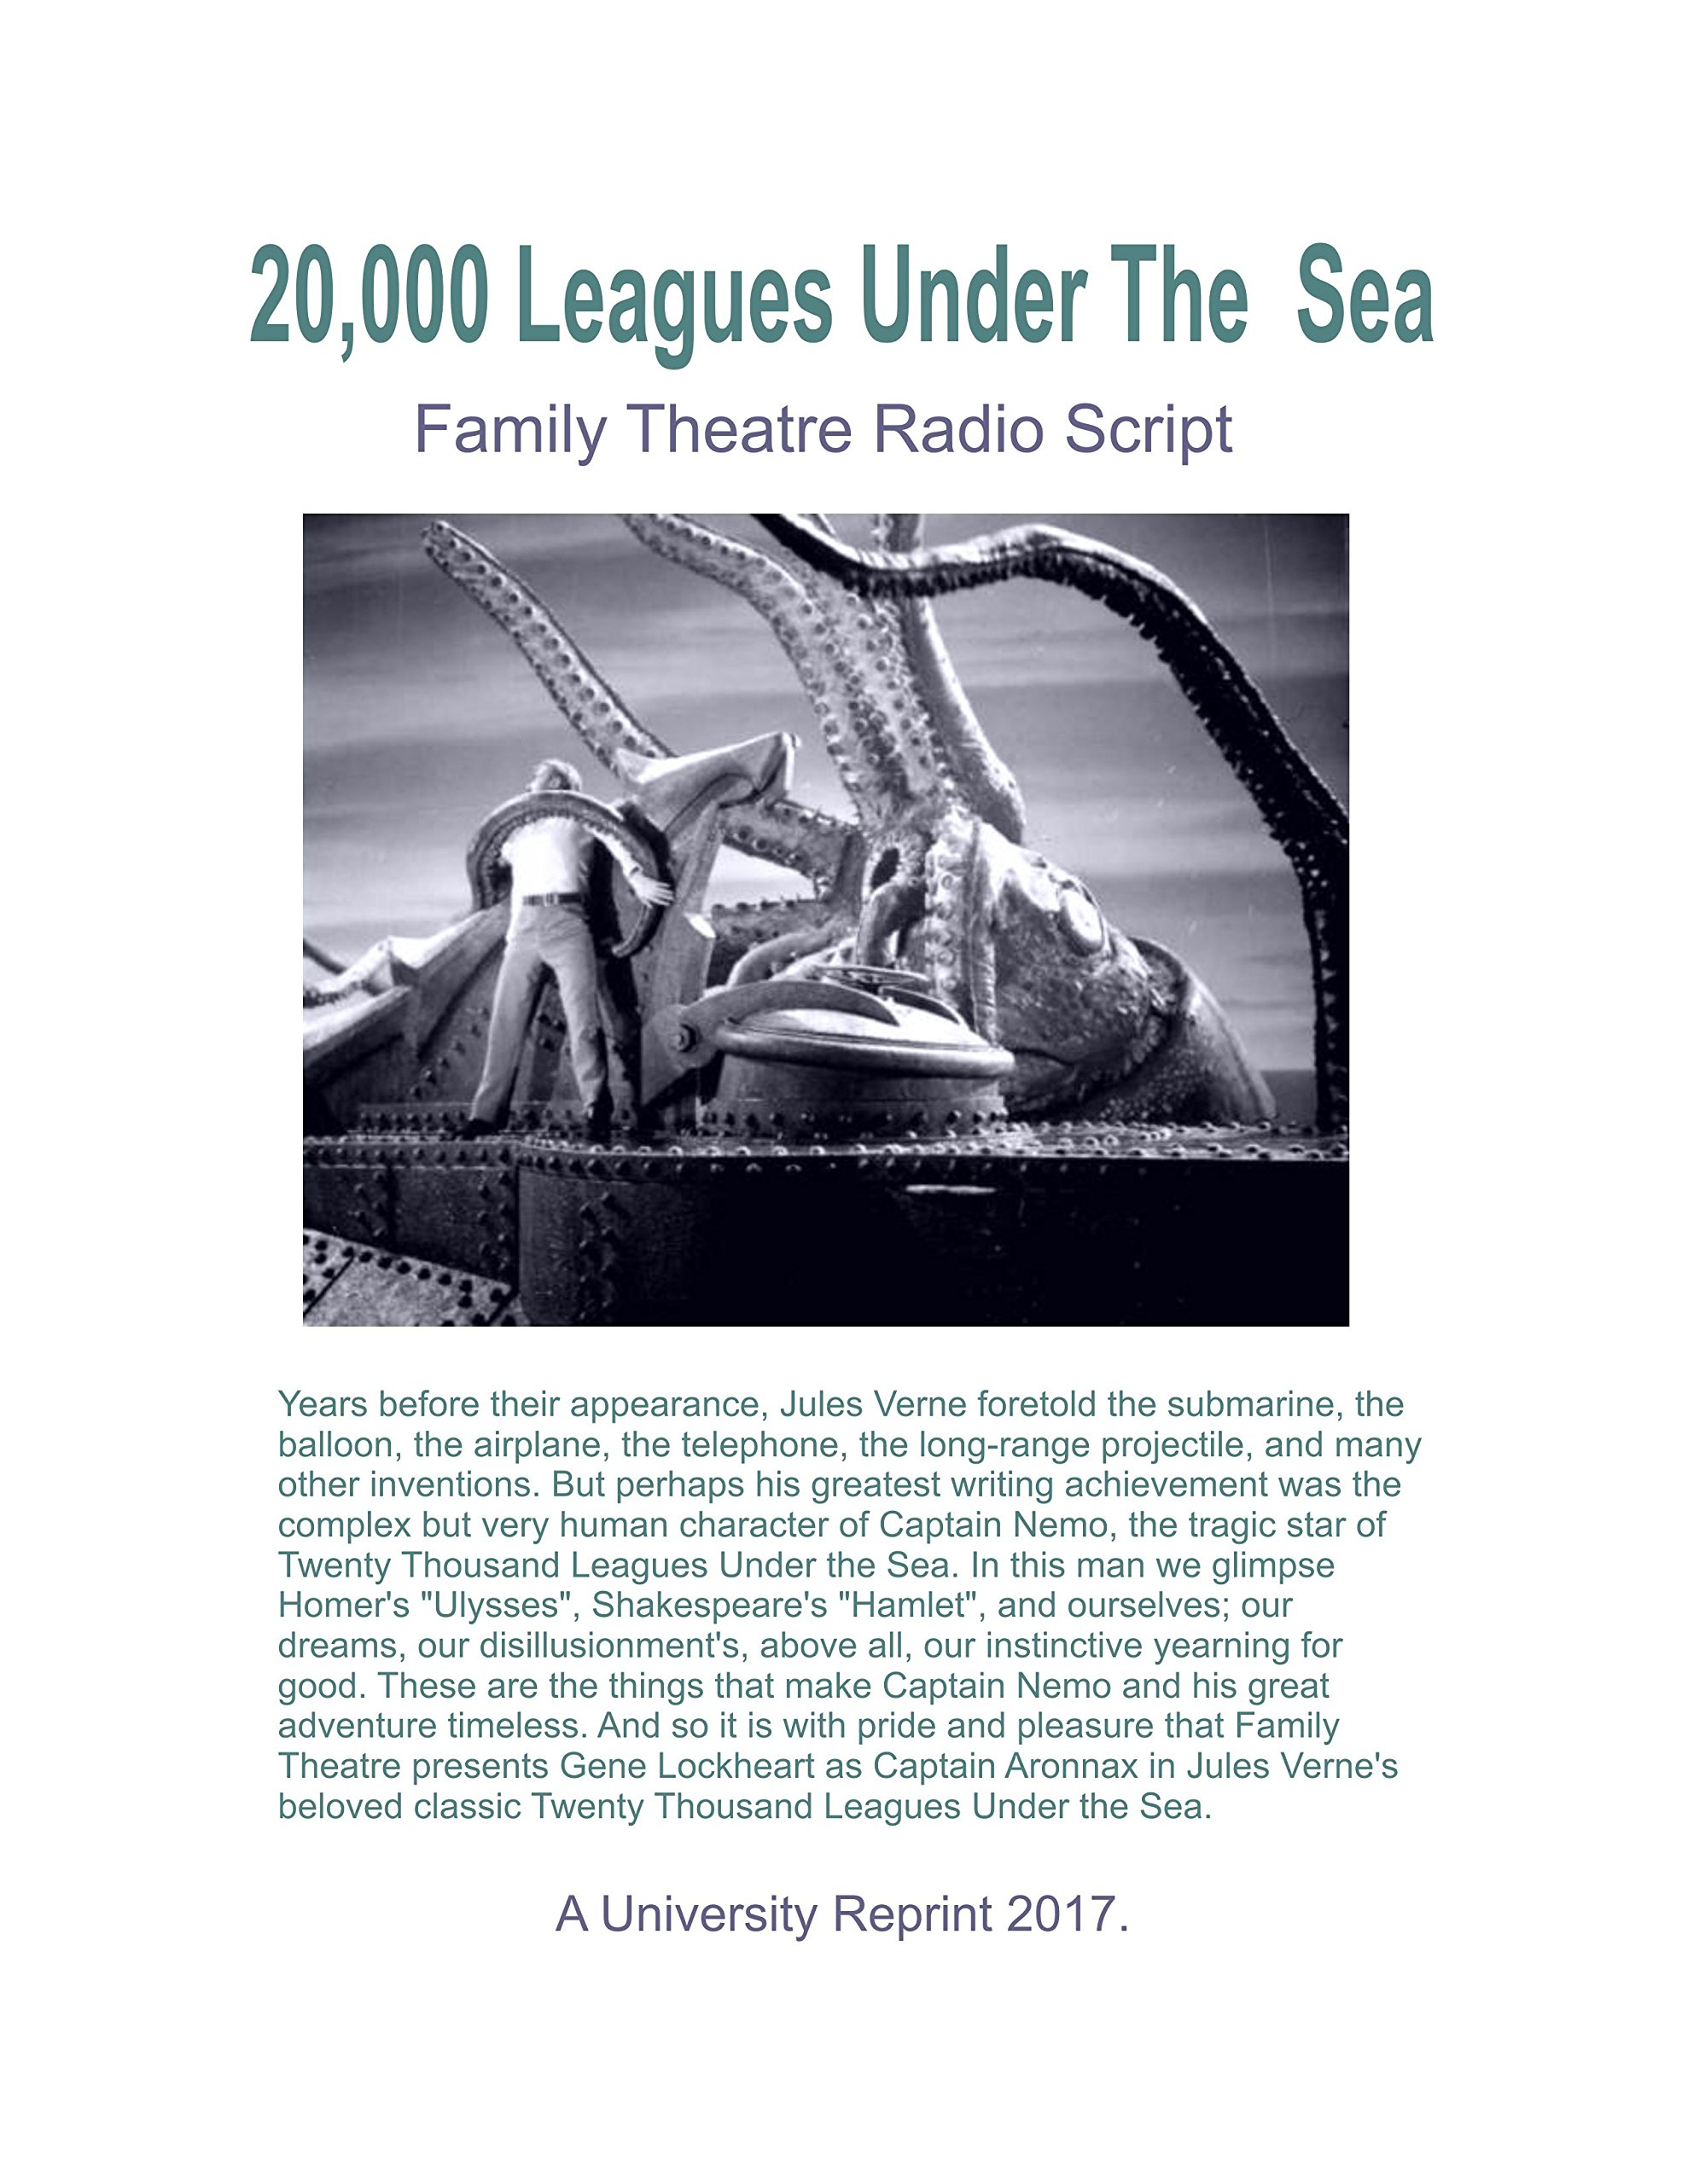 7 Classic Radio Scripts: 20,000 Leagues Under The Sea, A Christmas Carol, Around the World in 80 Days, Casablanca, Miracle on 34th Street, Philadelphia Story, Sorry Wrong Number [7 Student Loose Leaf Edition Books] pdf epub